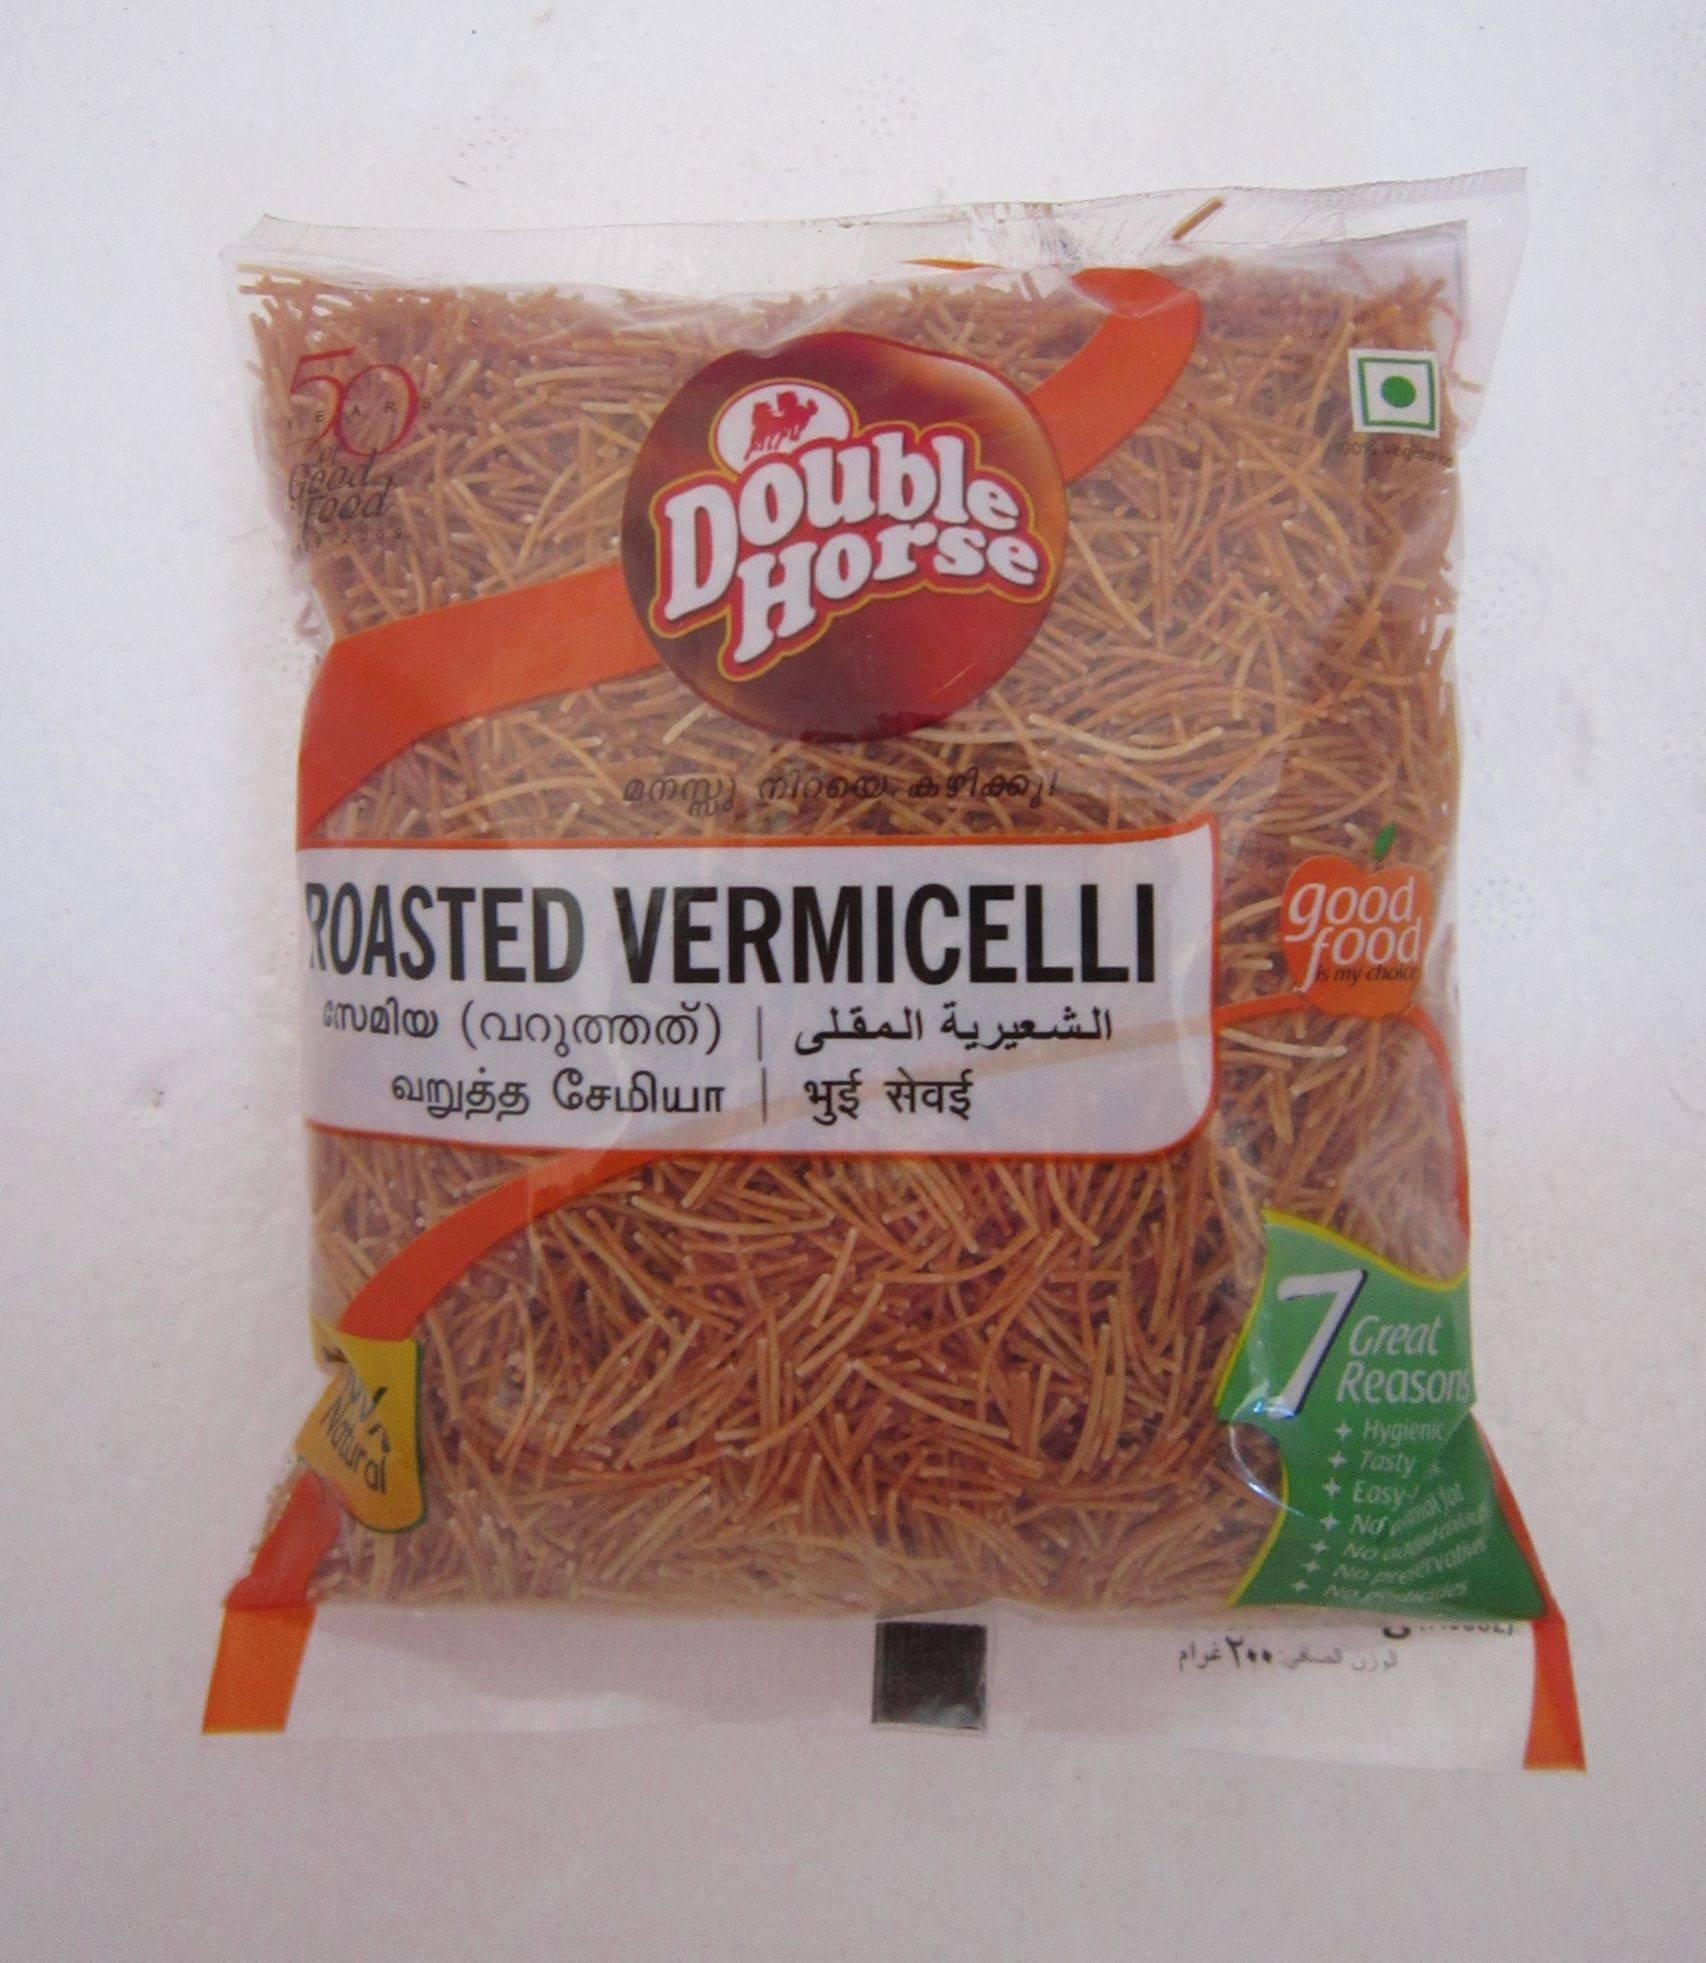 Double horse Vermicelli Roasted